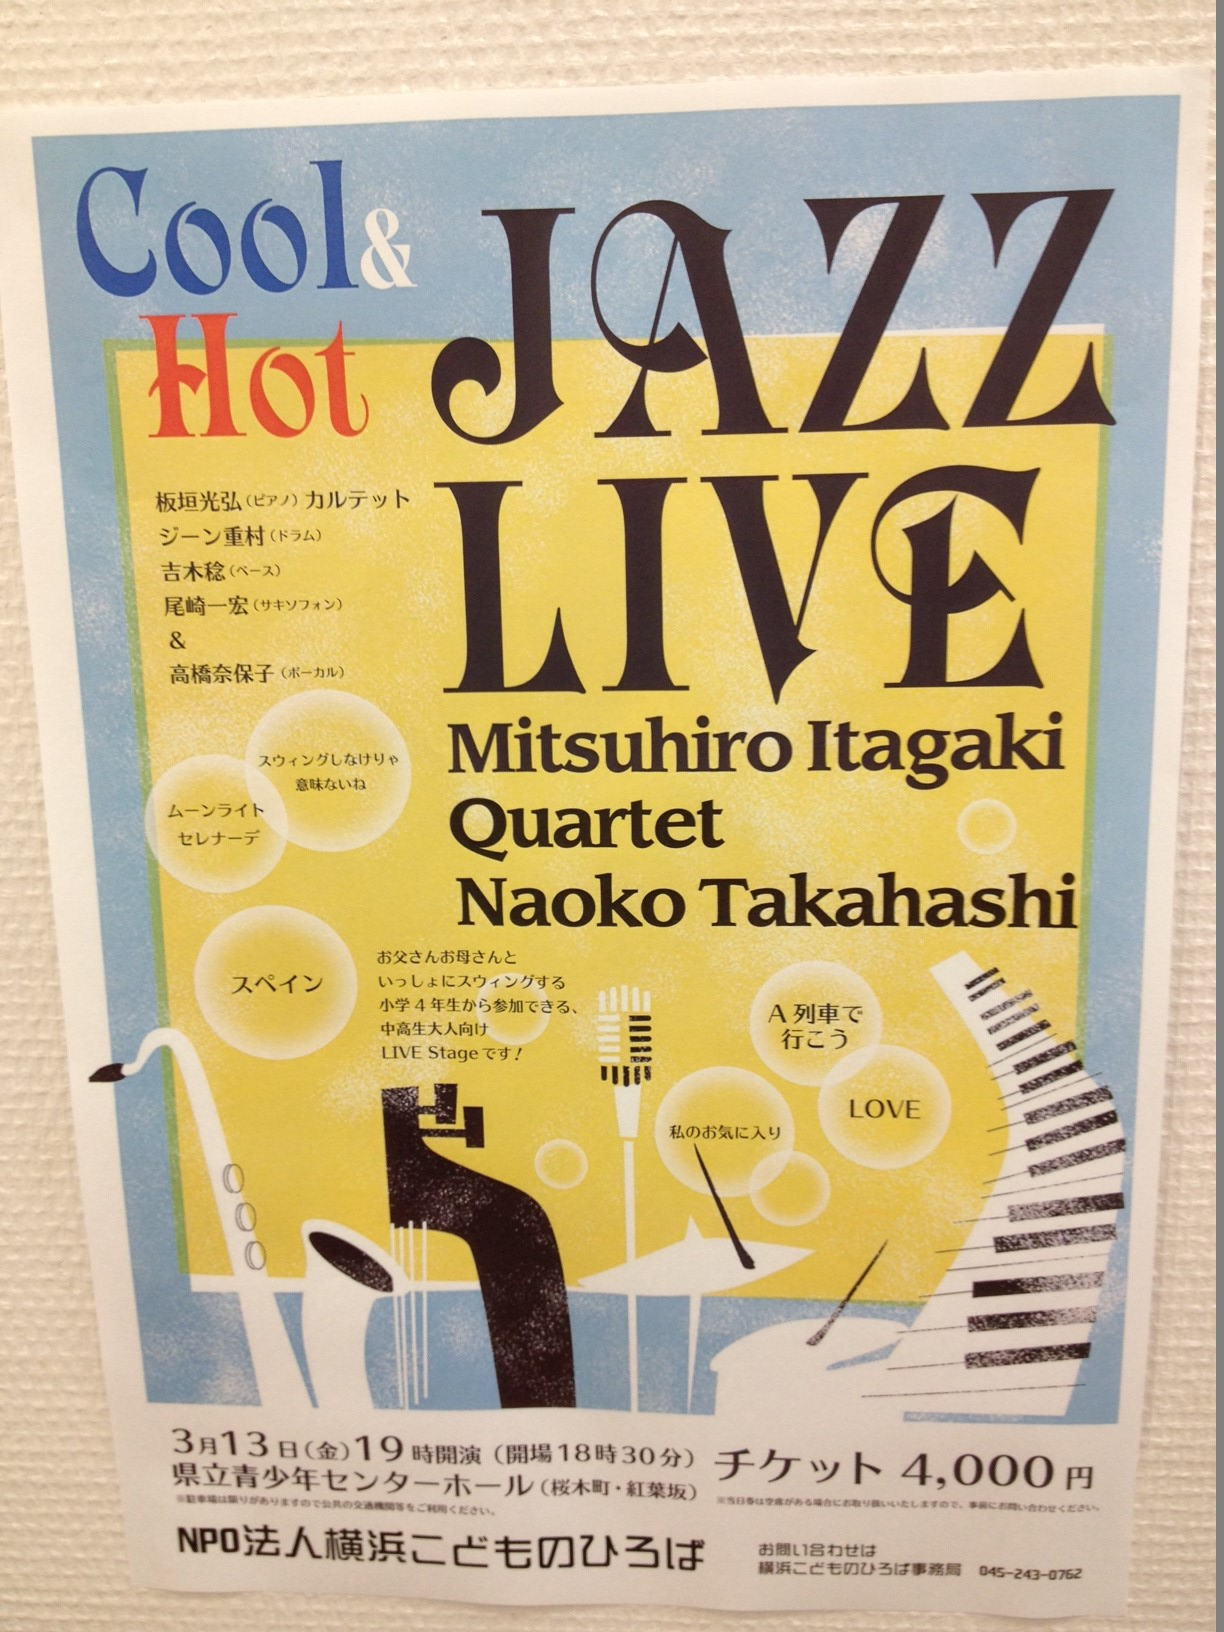 Cool & Hot Jazz。_d0003502_1571546.jpg